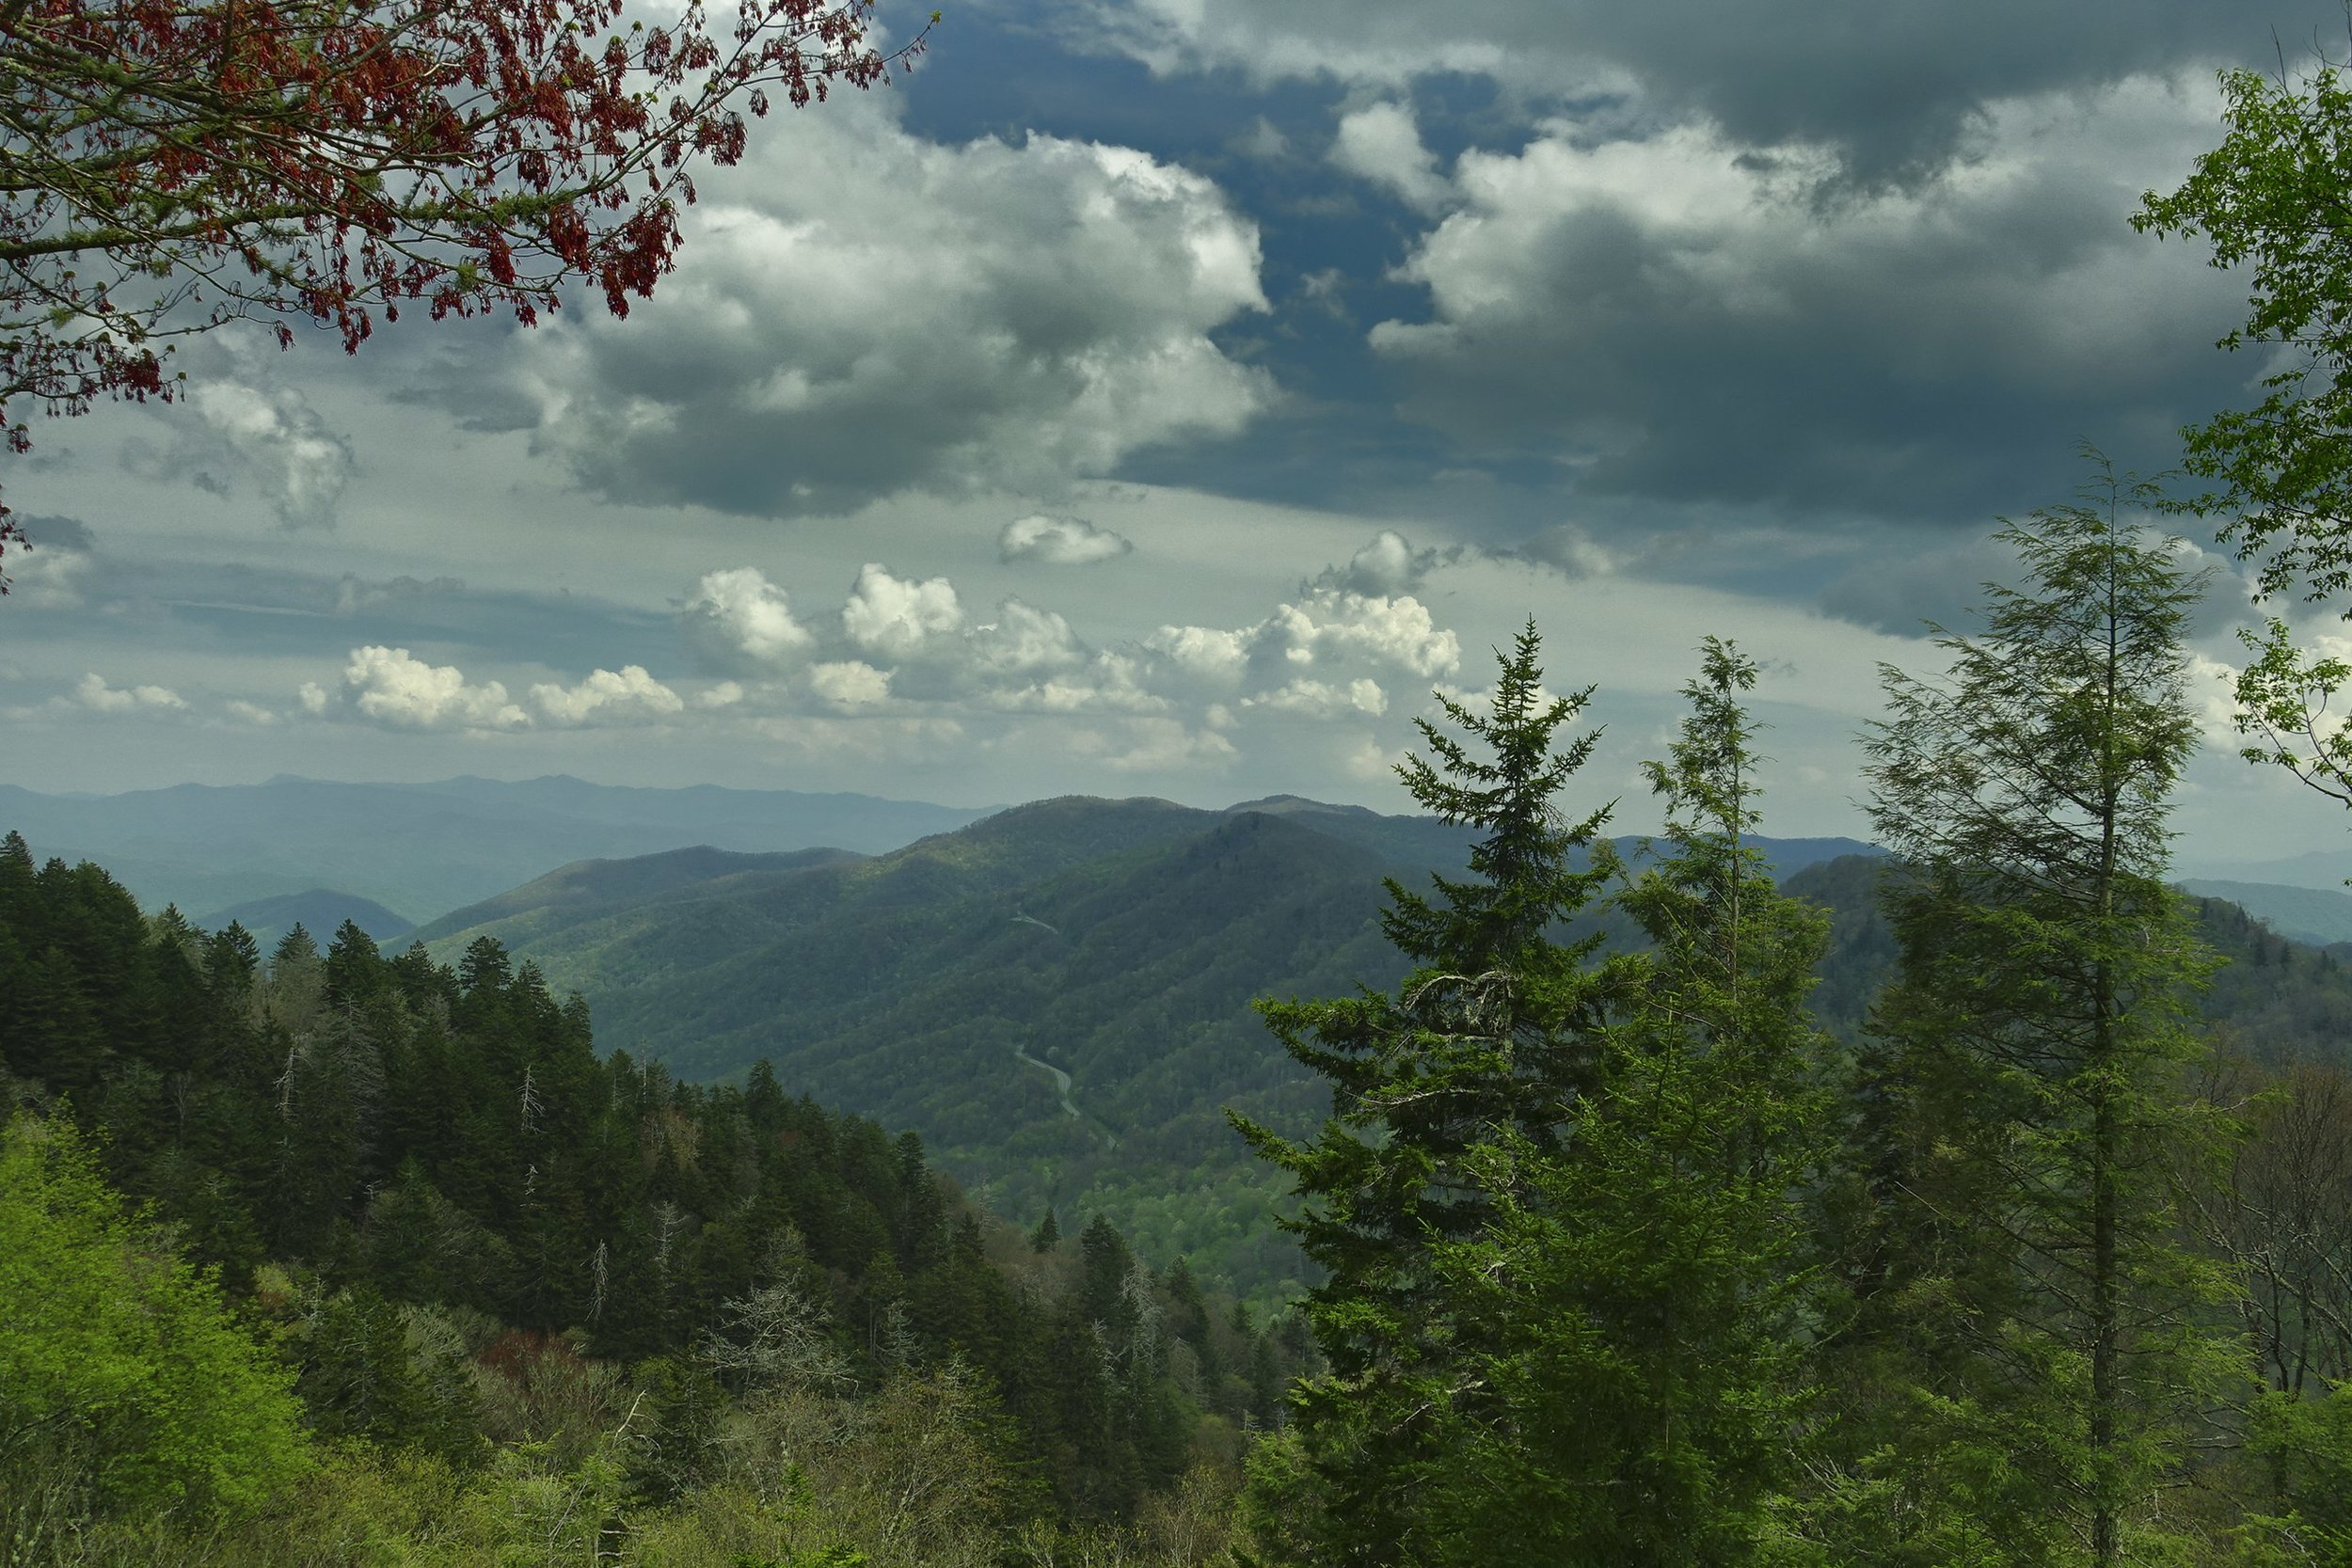 Great Smoky Mountains National Park, Tennessee by Niagara66